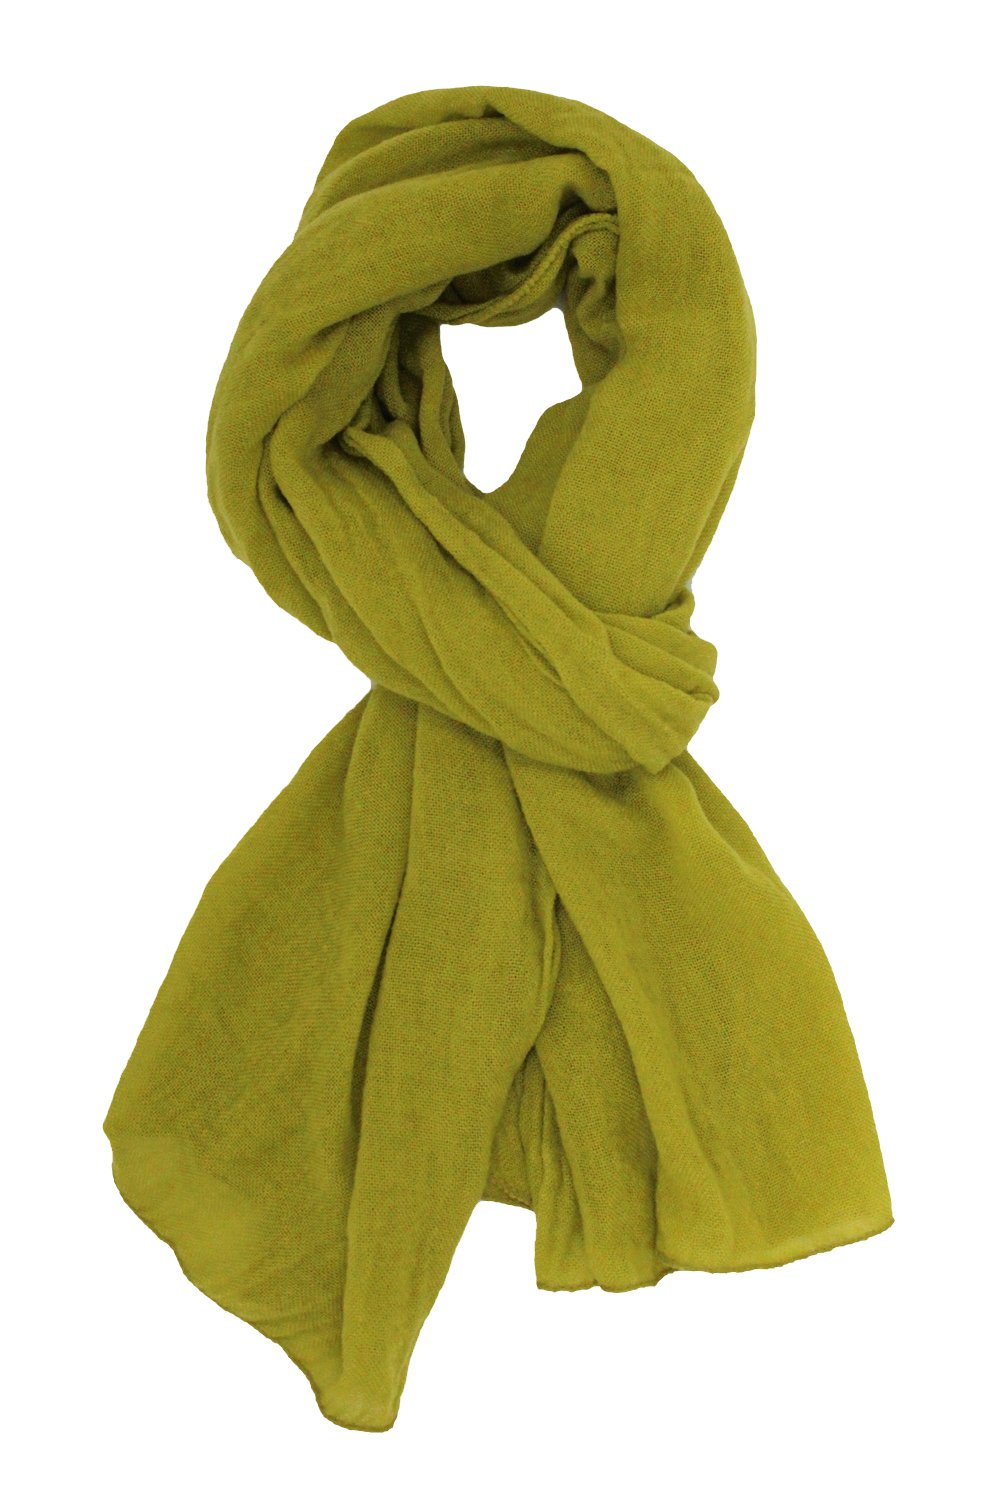 Soft Long Scarfs For Women Lightweight Warm Shawl Wrap Fall Blanket Solid Color (Grass Green)